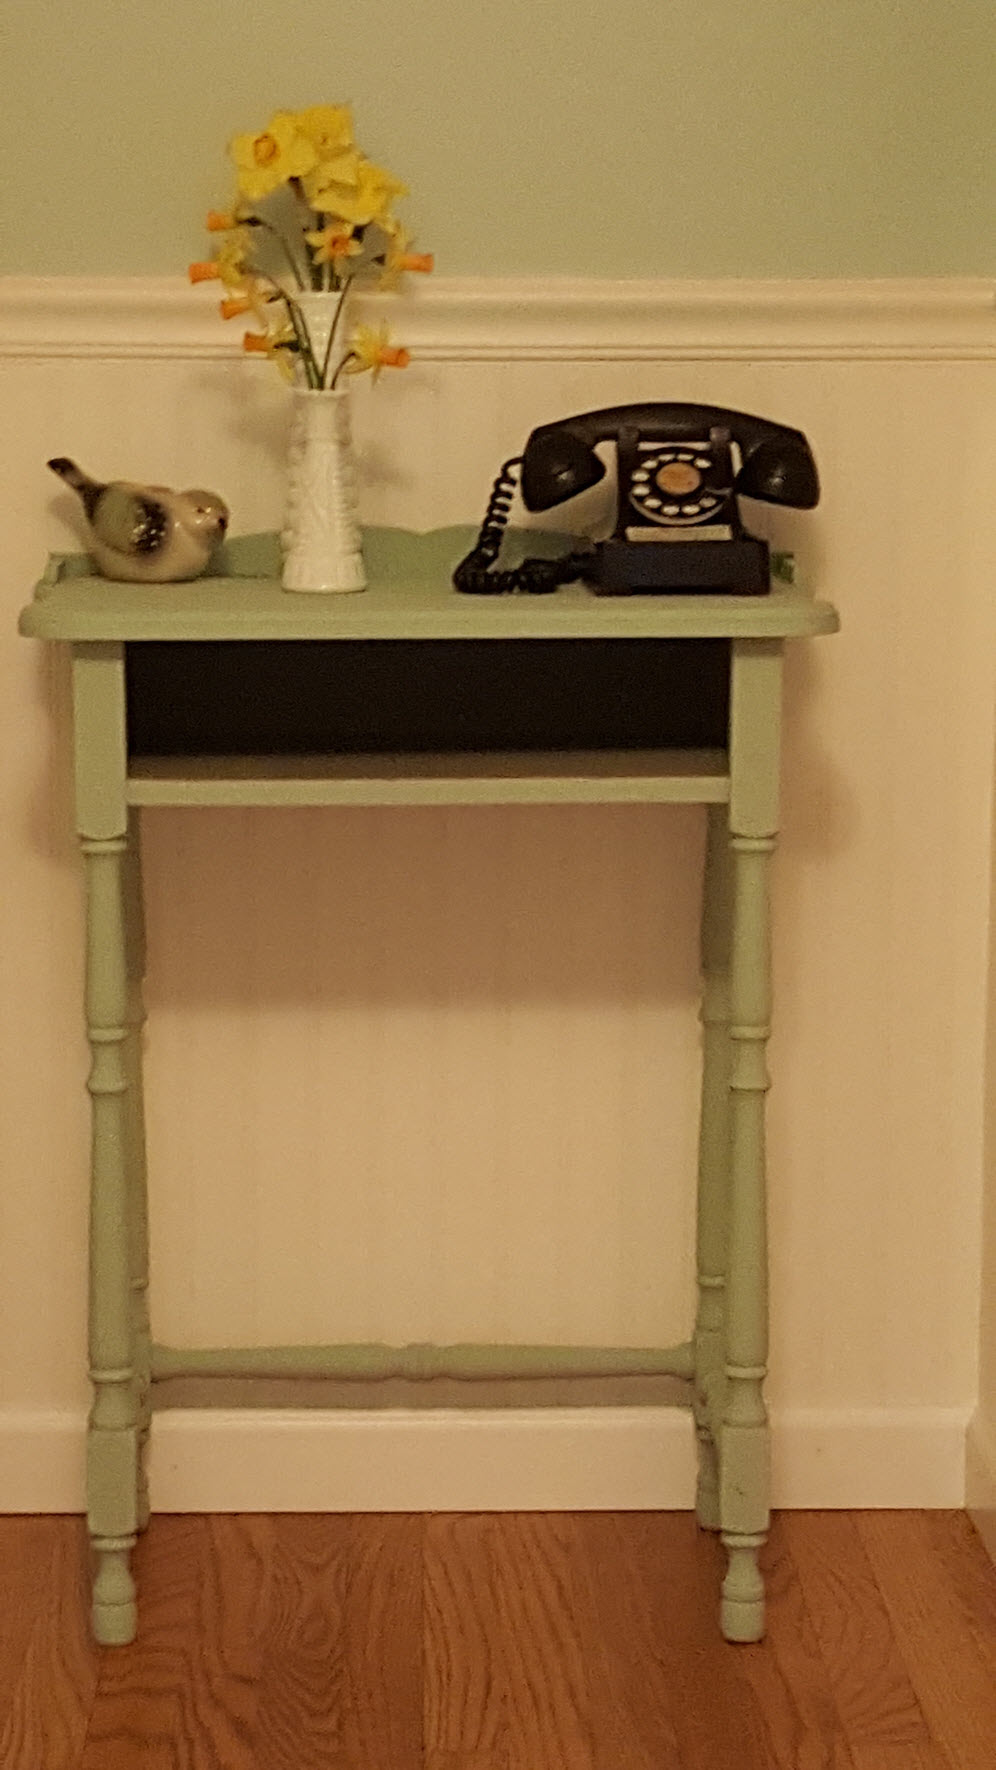 Antique table gets new life painted Poetic Blue and Silver Like. This is an old telephone table